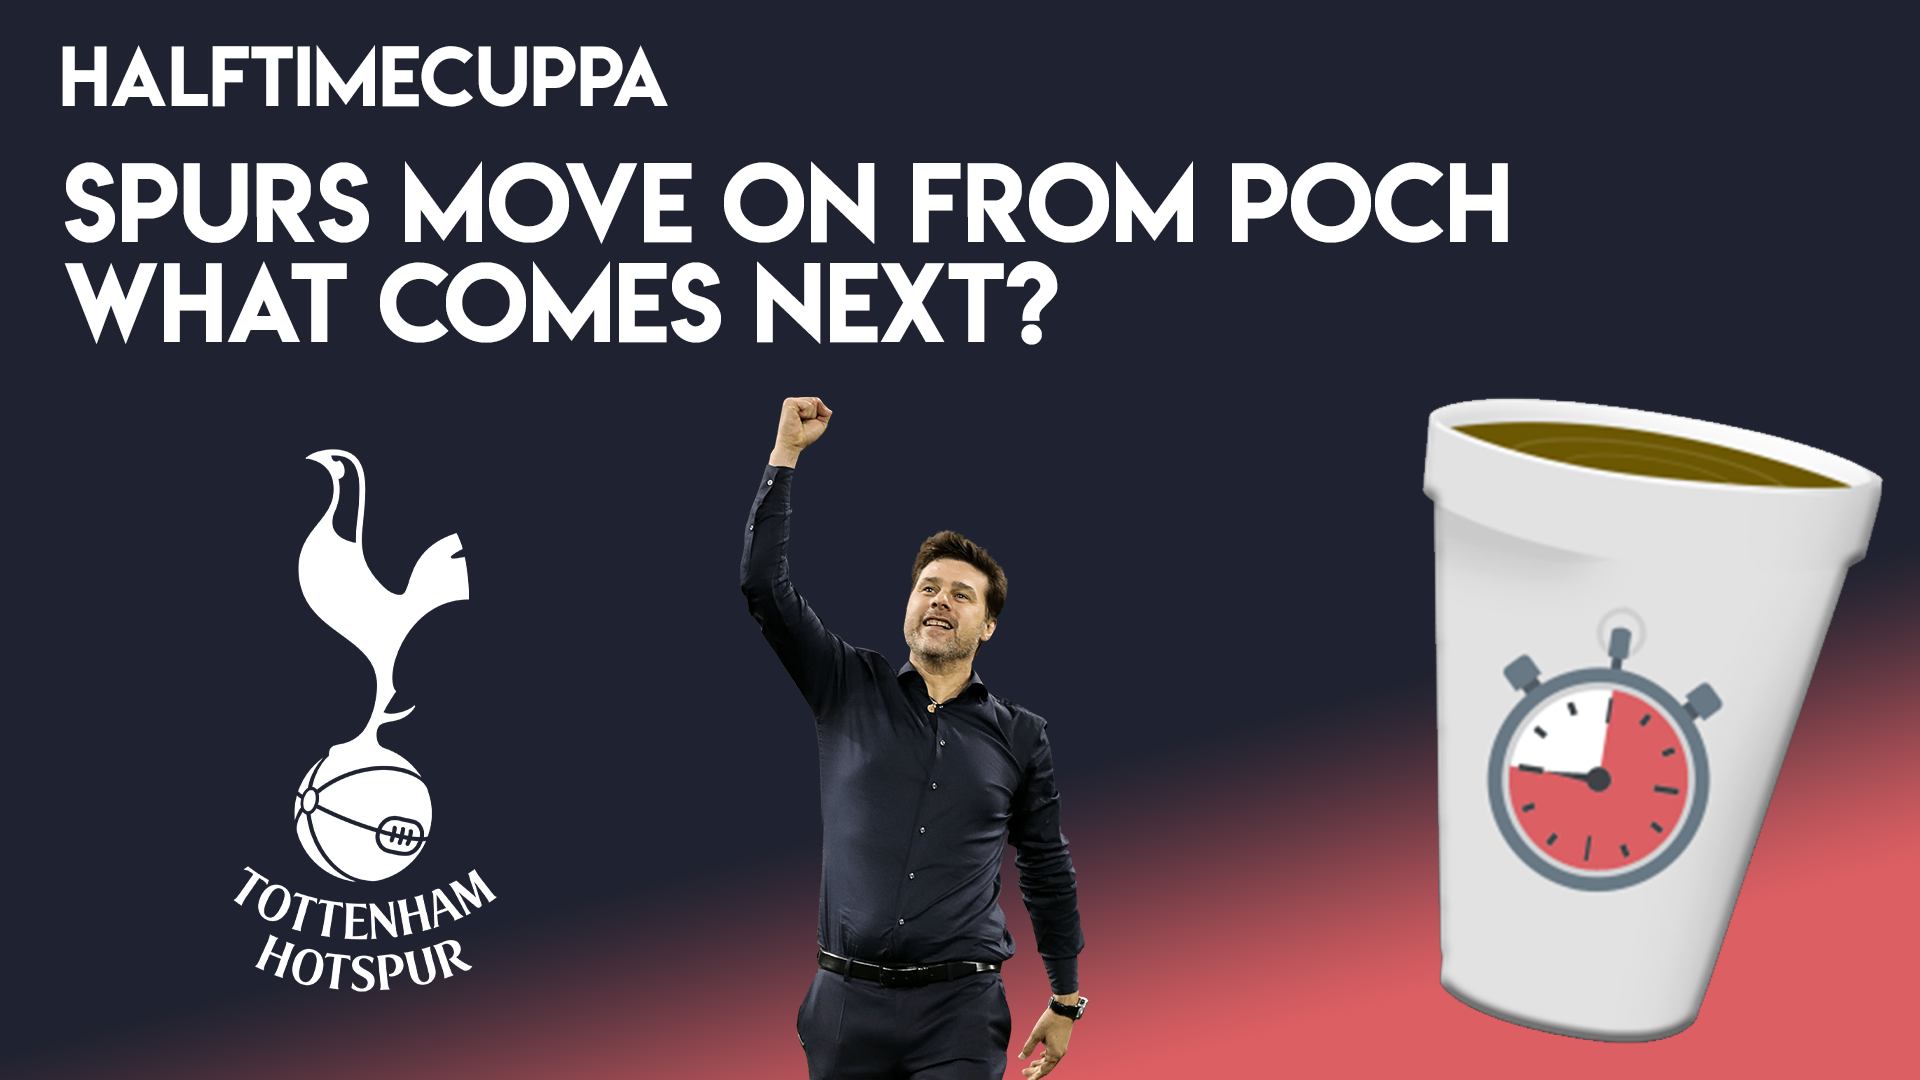 Spurs move on from Poch – What comes next?